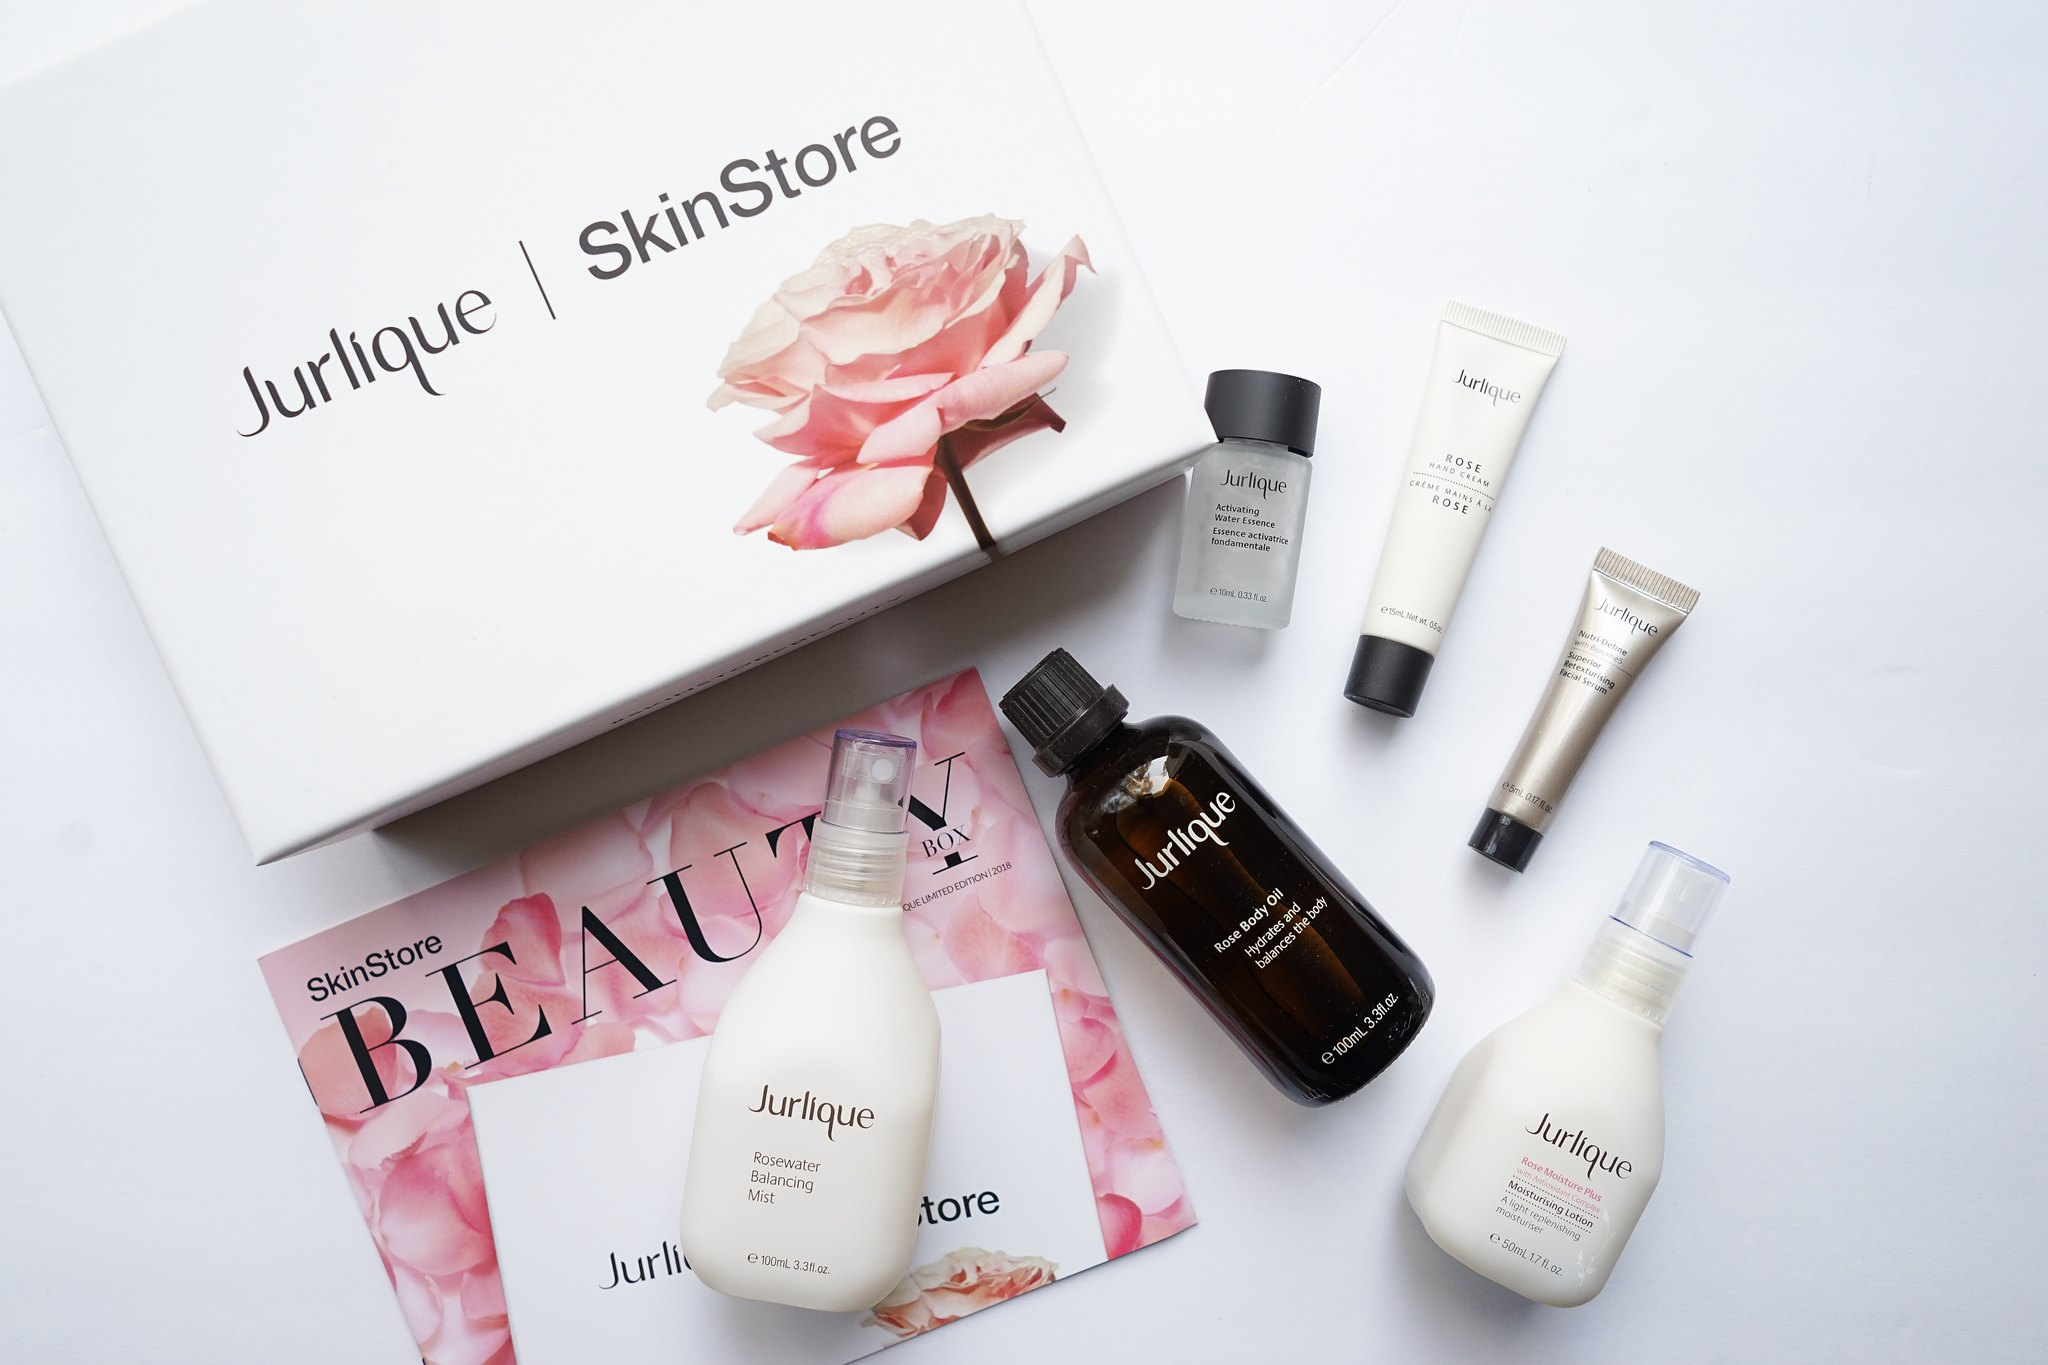 Jurlique, SkinStore, Beauty Box, Limited Edition, Skincare, Bodycare, Luxury Beauty, Mom beauty, Mom blogger, Mommy blog